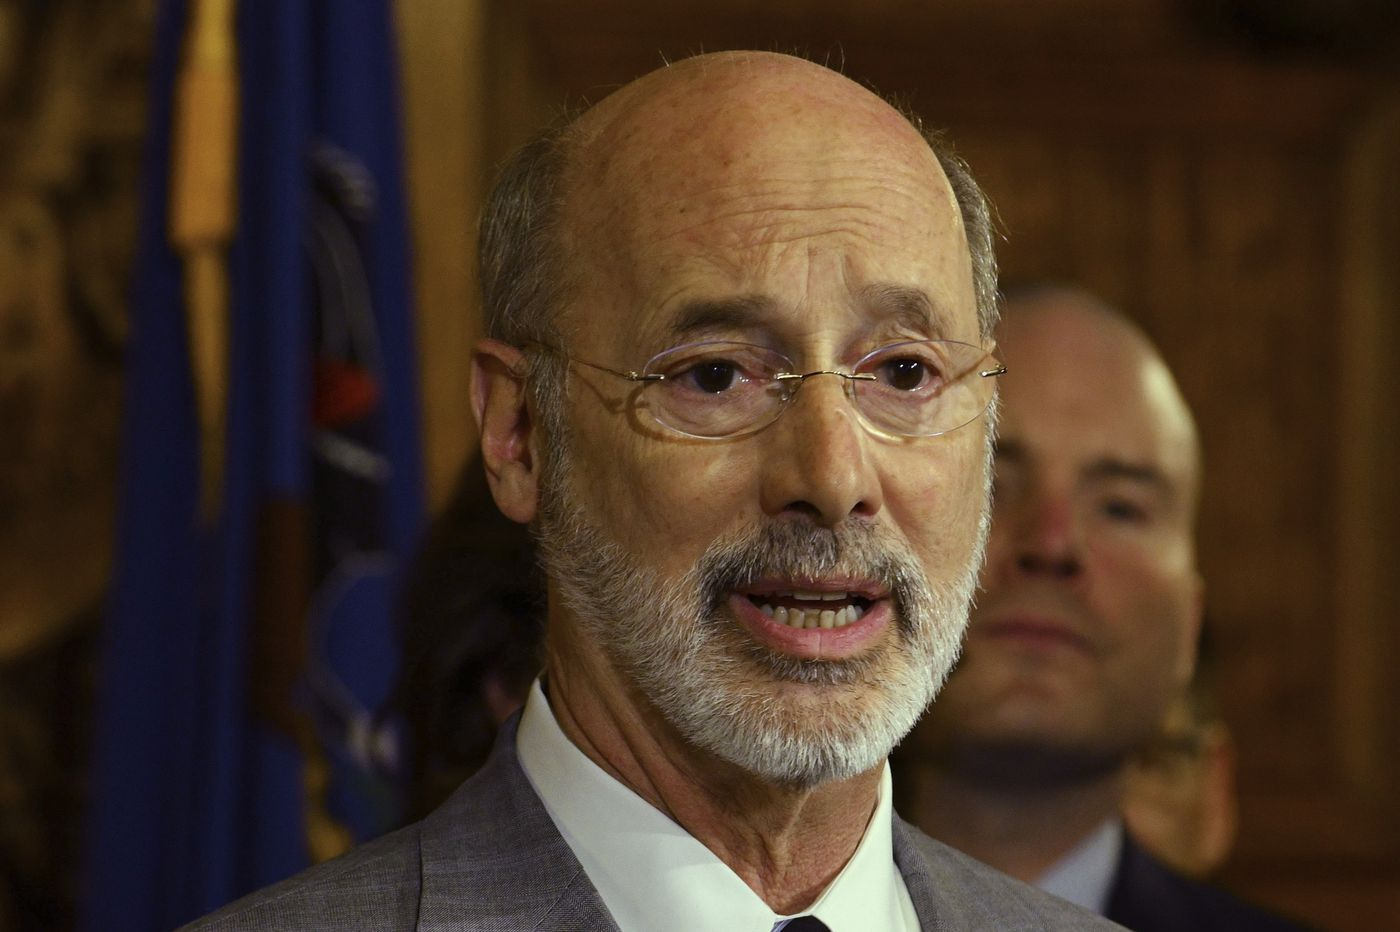 Pa. Gov. Tom Wolf and the horse industry are clashing over his plan to divert money for student loan relief